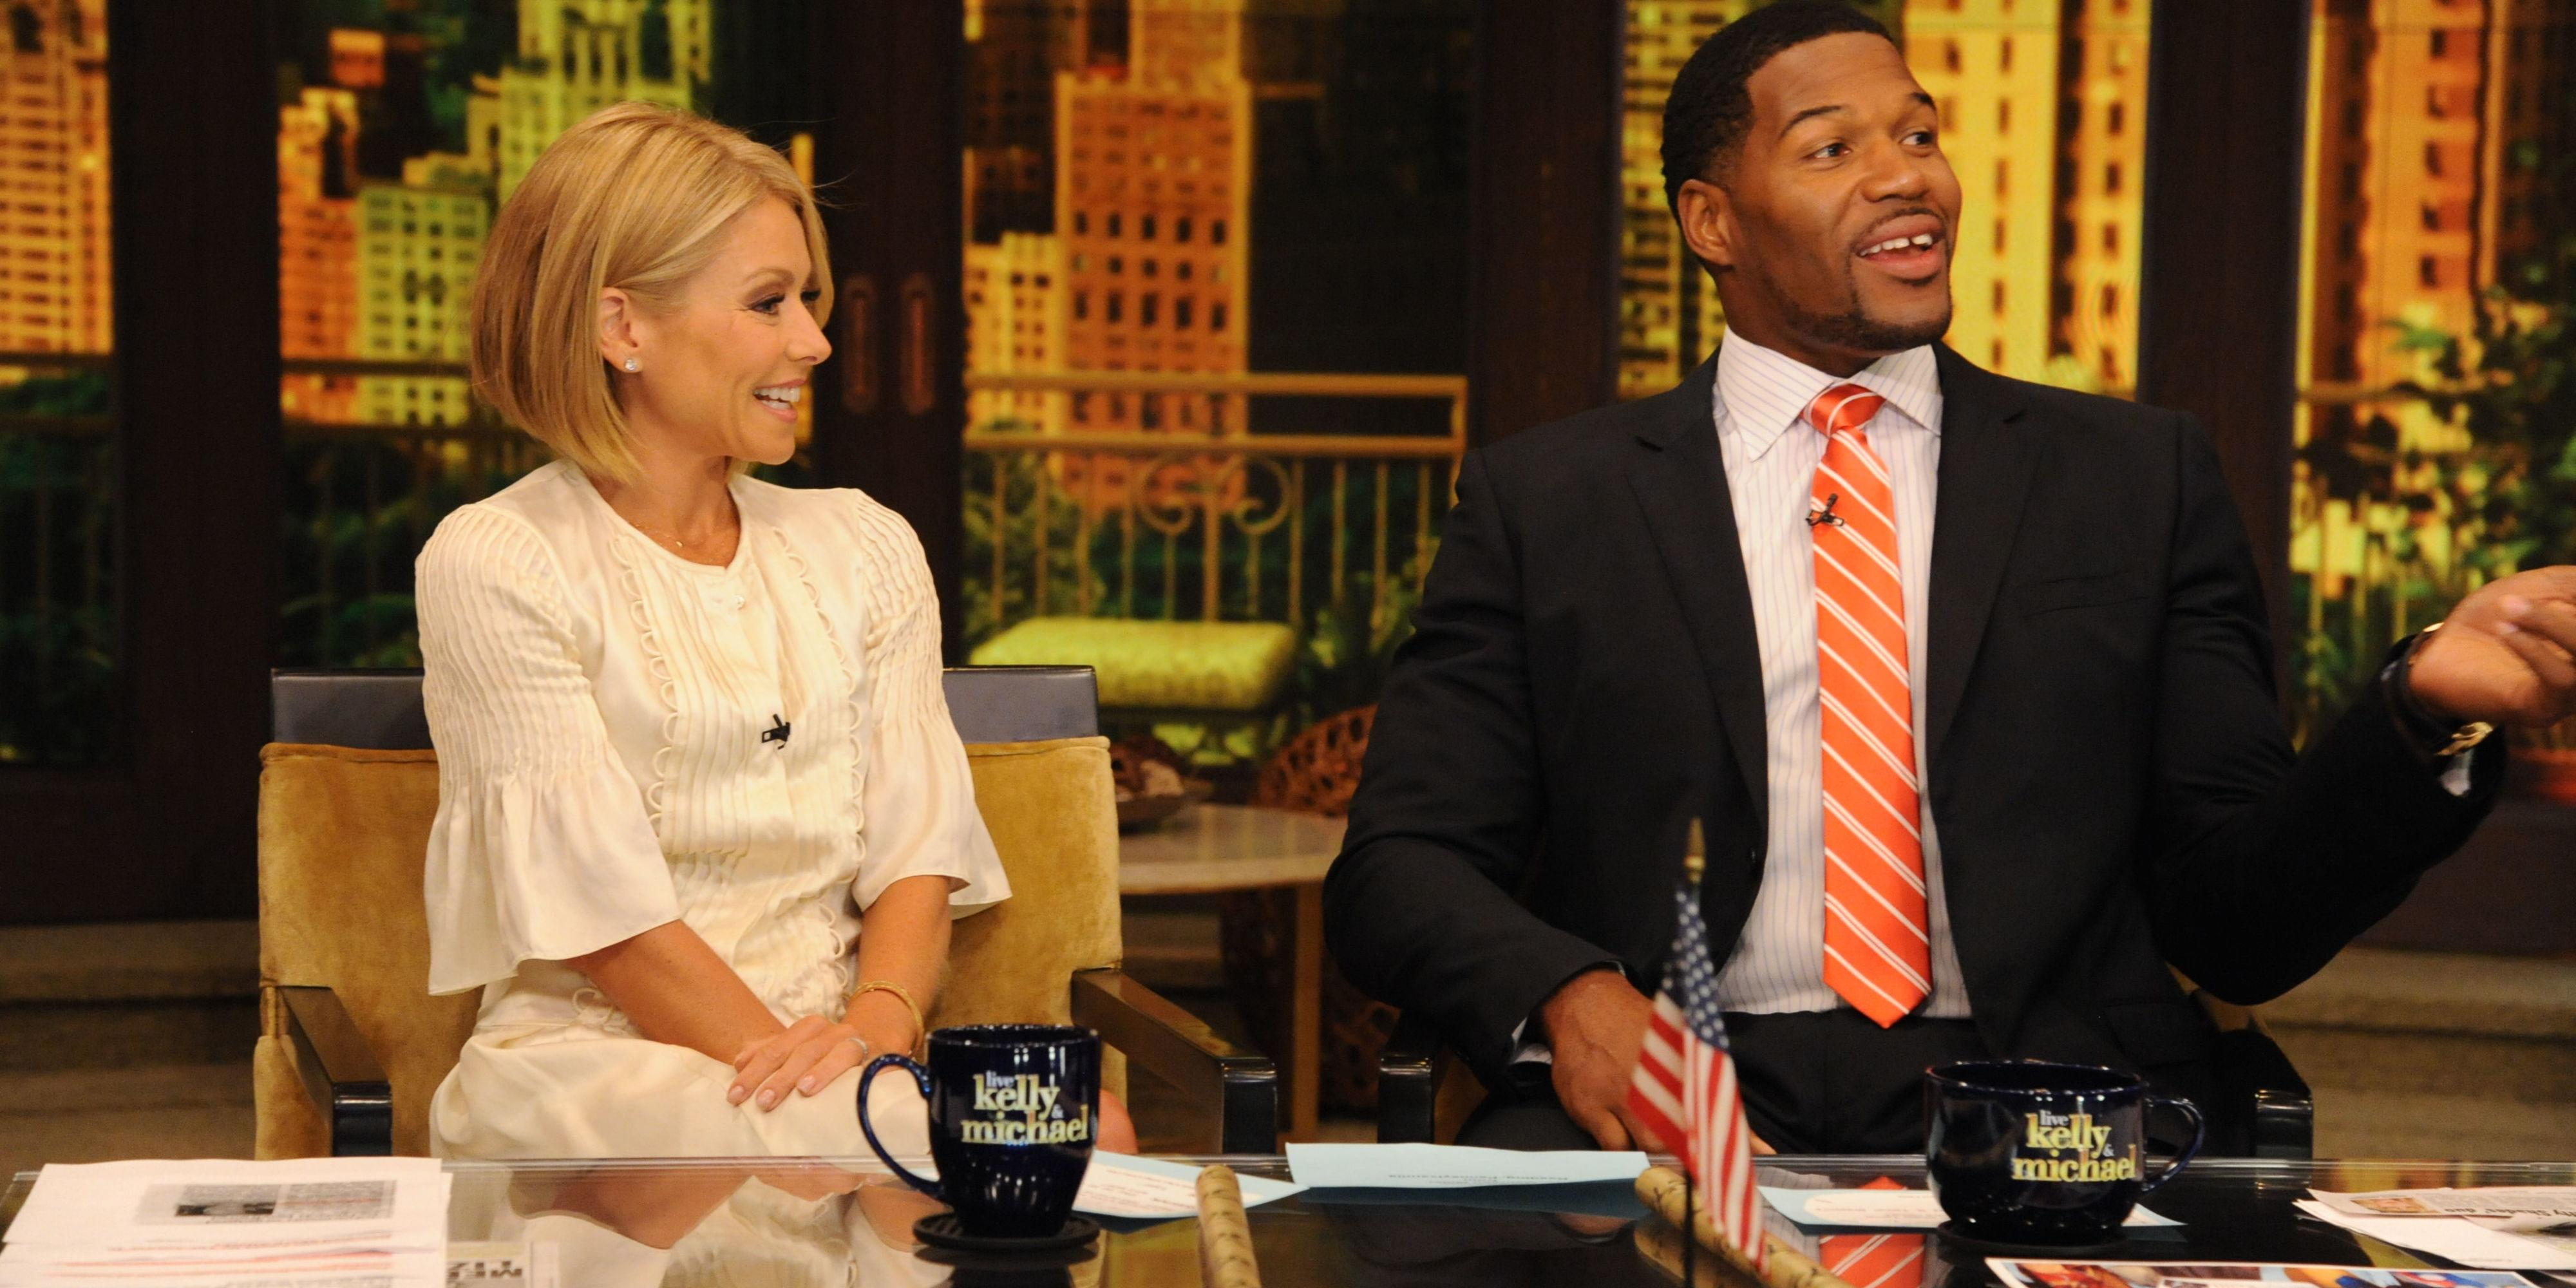 Kelly Ripa Brings Up Michael Strahan's Divorce During Yet Another Awkward 'Live' Moment